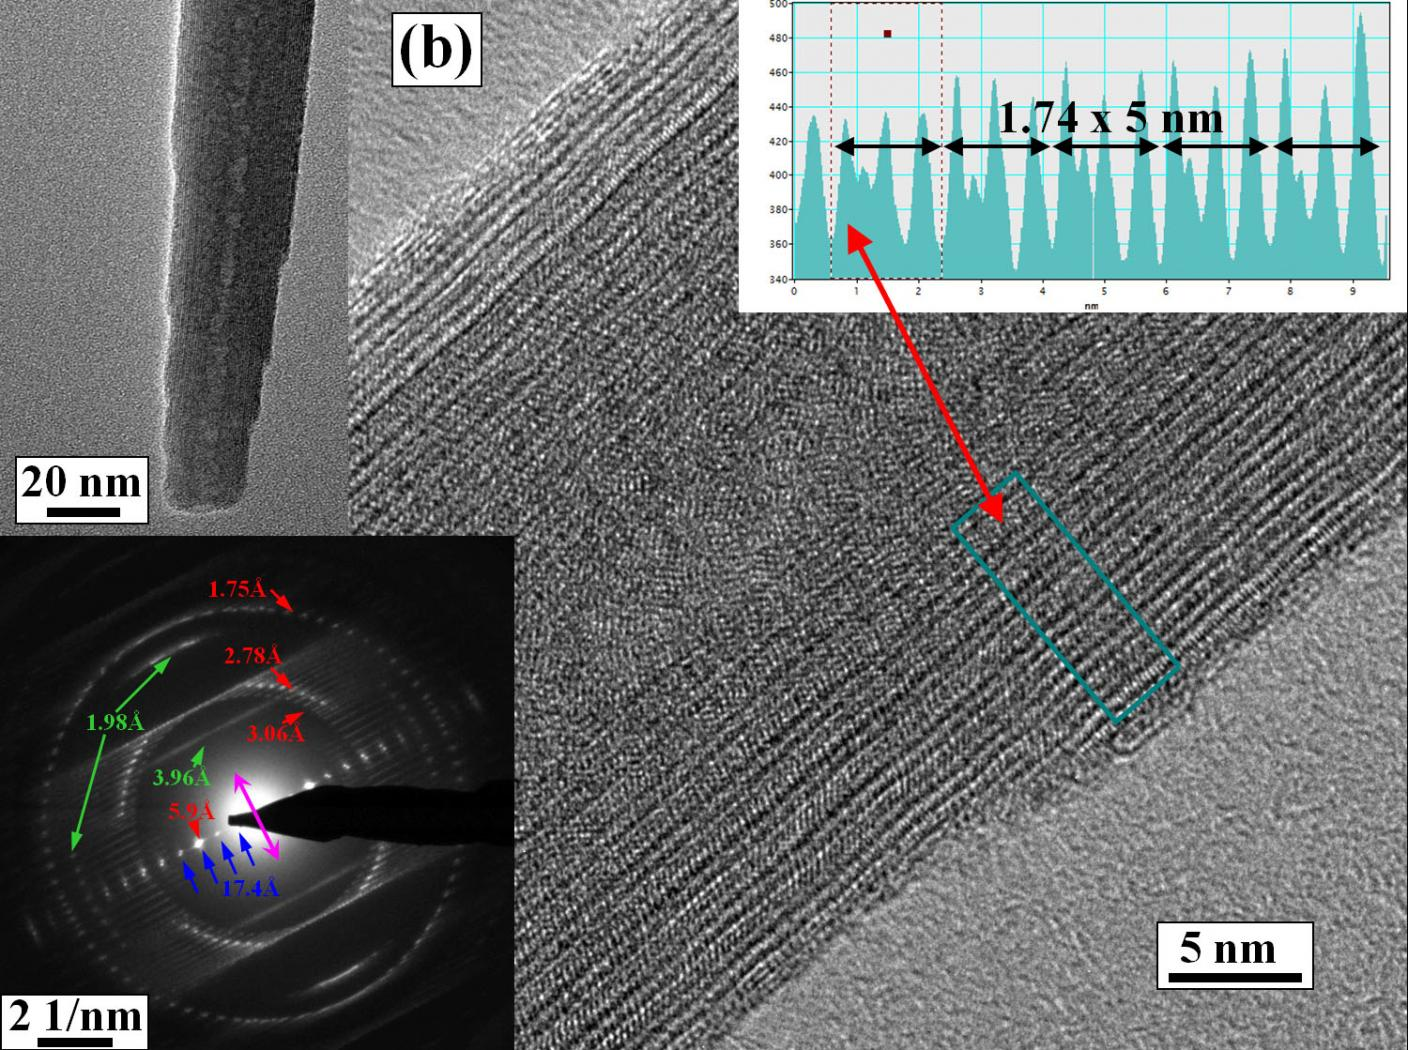 Images Transmission Electron Microscopy Materials